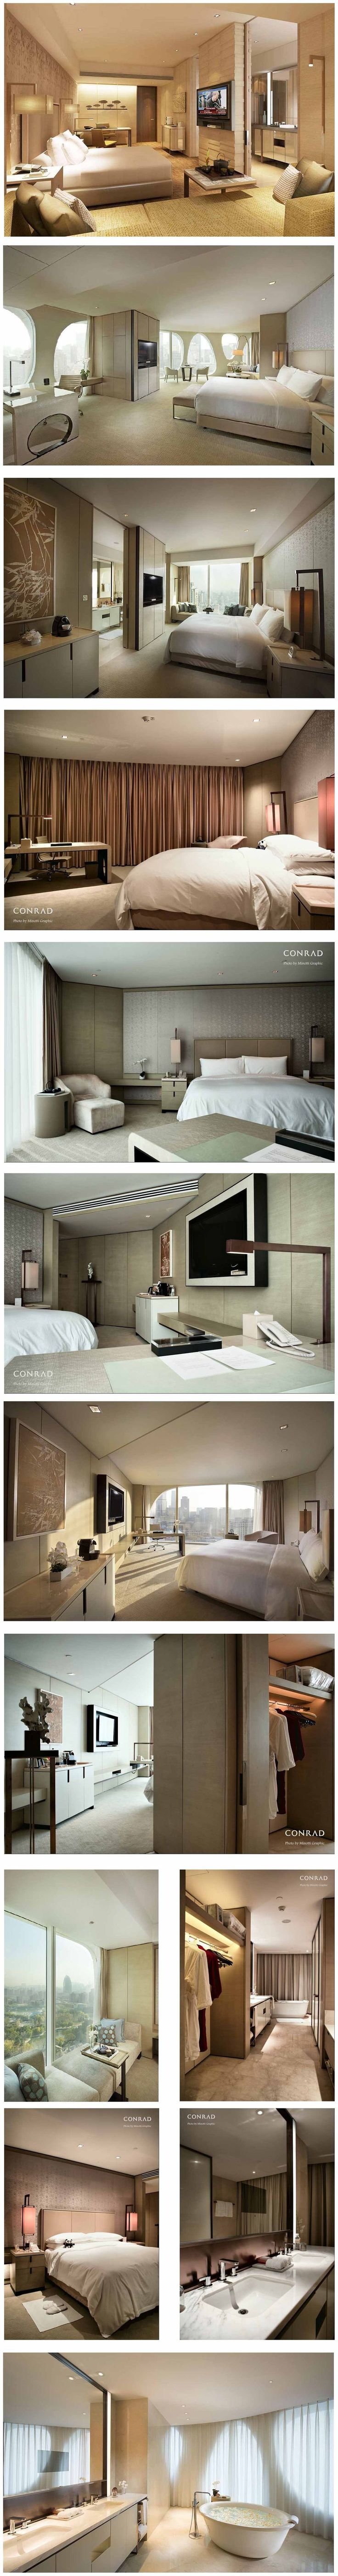 best project images on pinterest bedrooms home ideas and bedroom